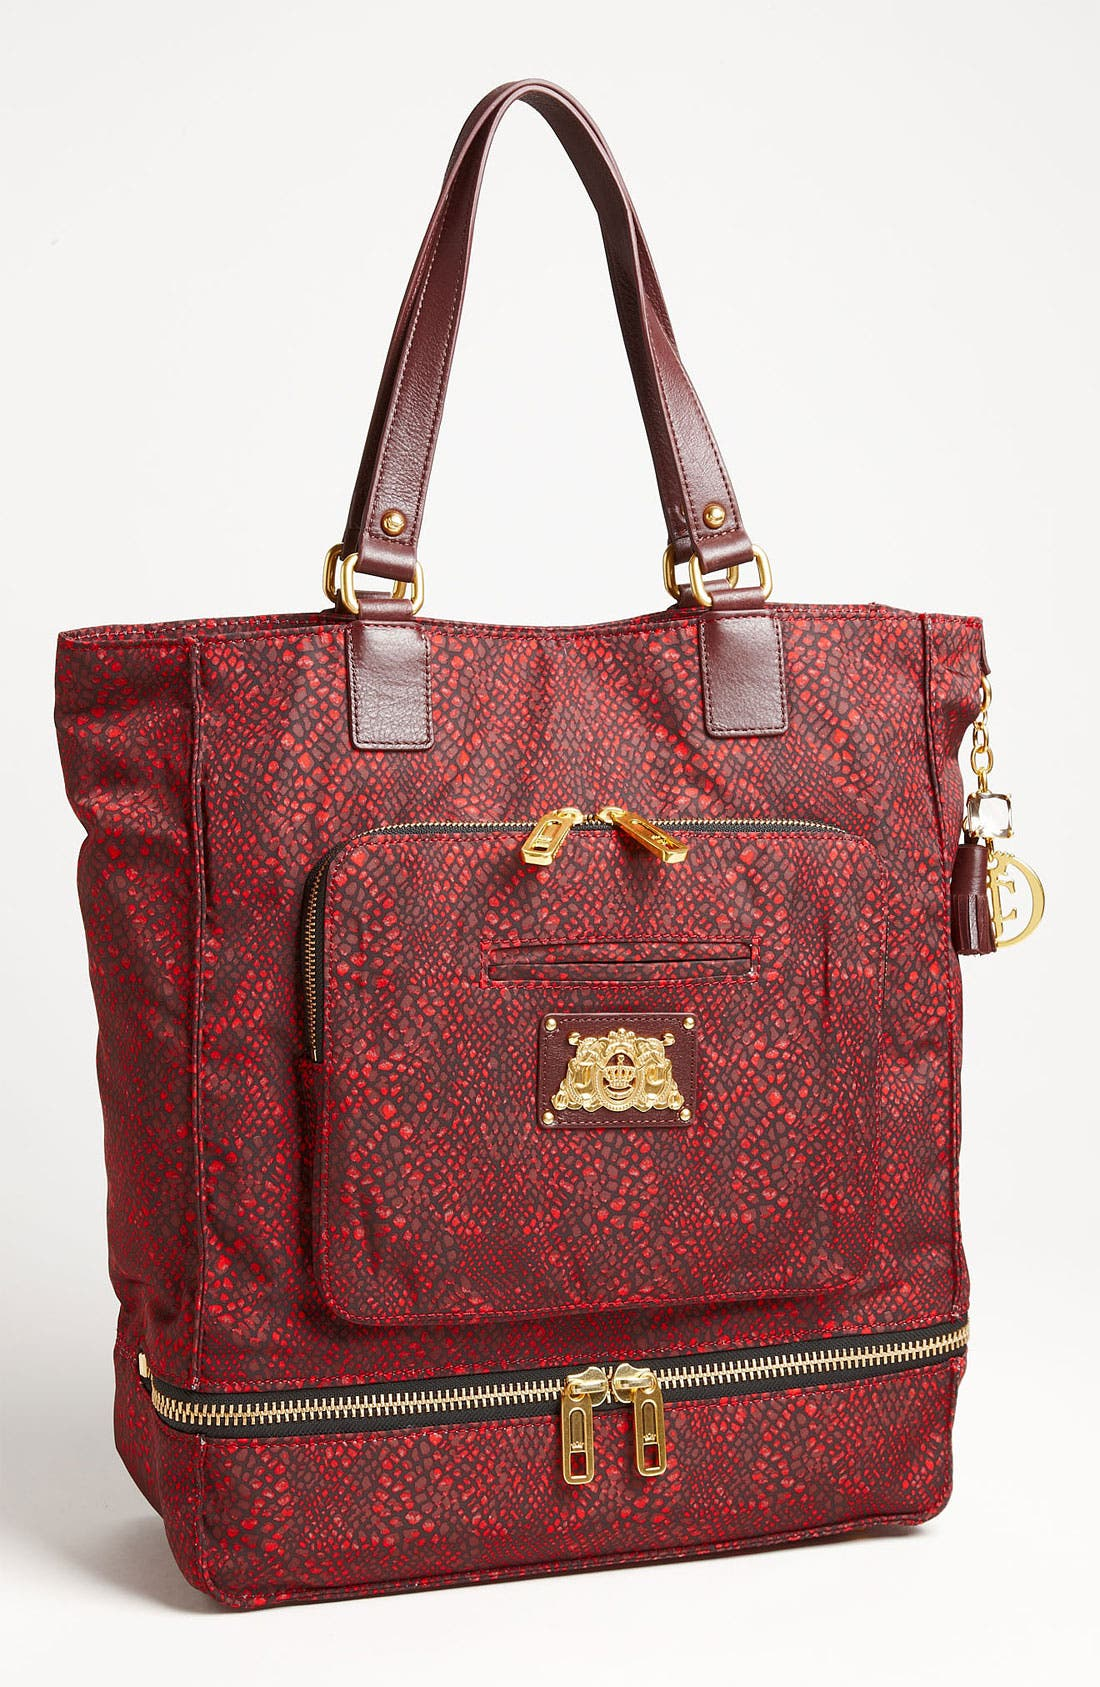 Main Image - Juicy Couture 'All Day All Night' Oversized Tote